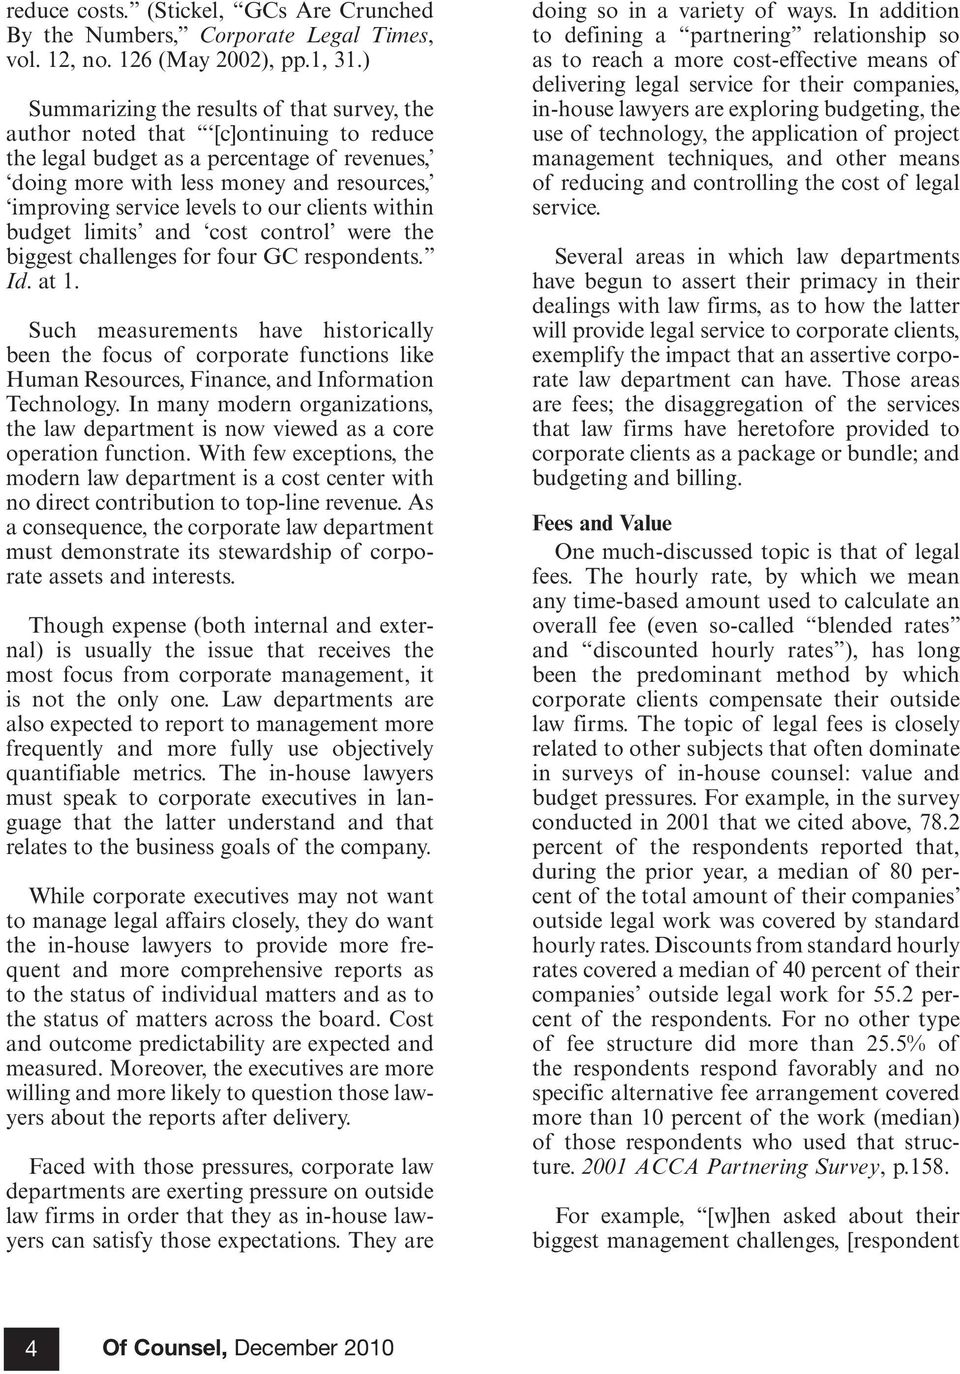 The Development of the Corporate Law Department and Its